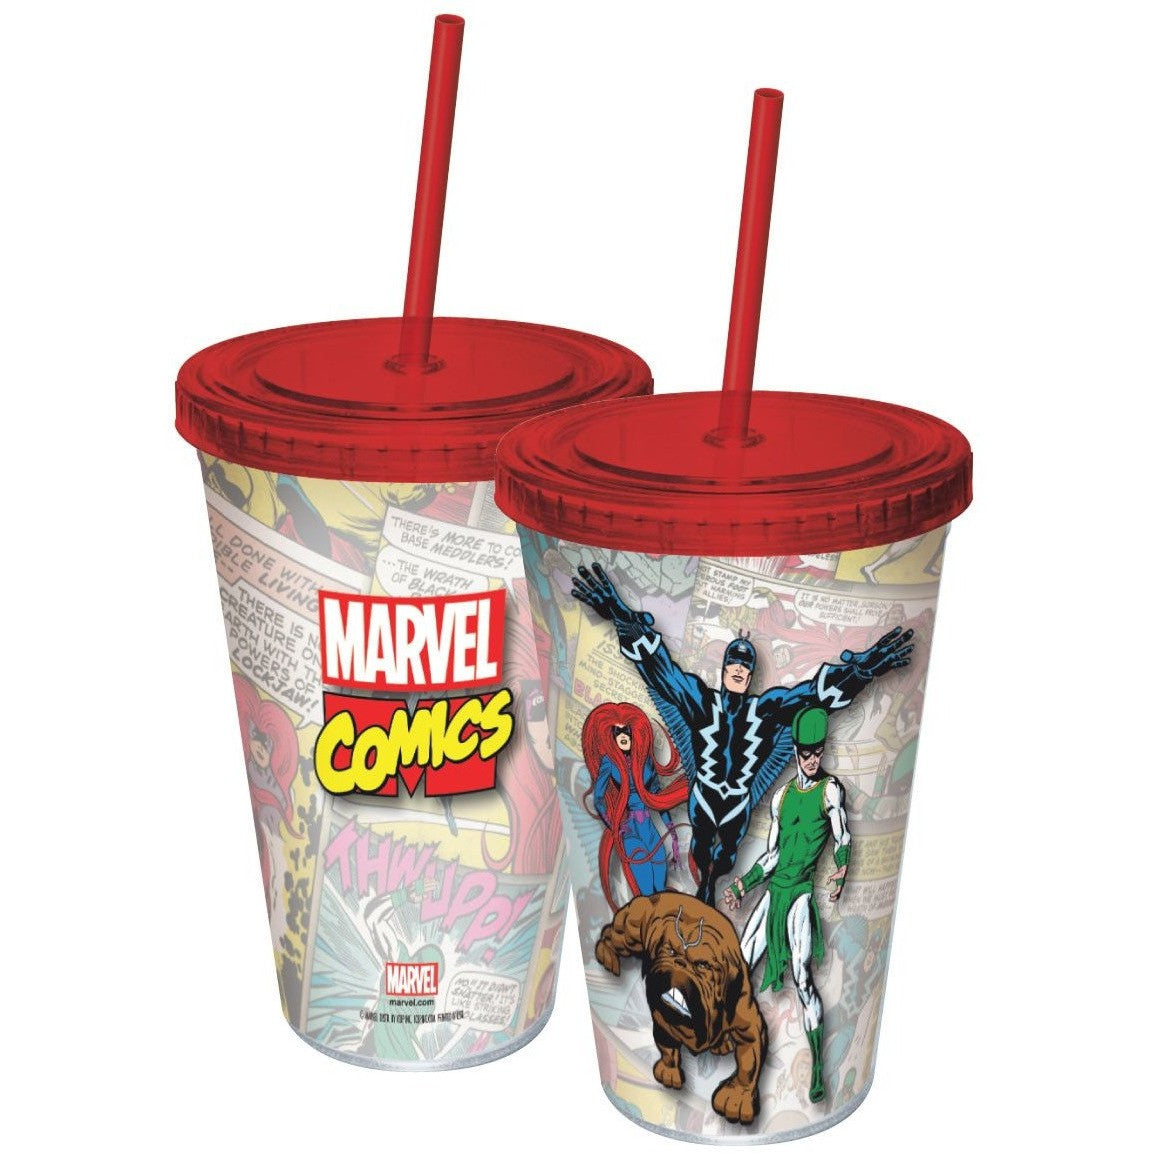 Inhumans Plastic Travel Cup with Straw Uncanny!